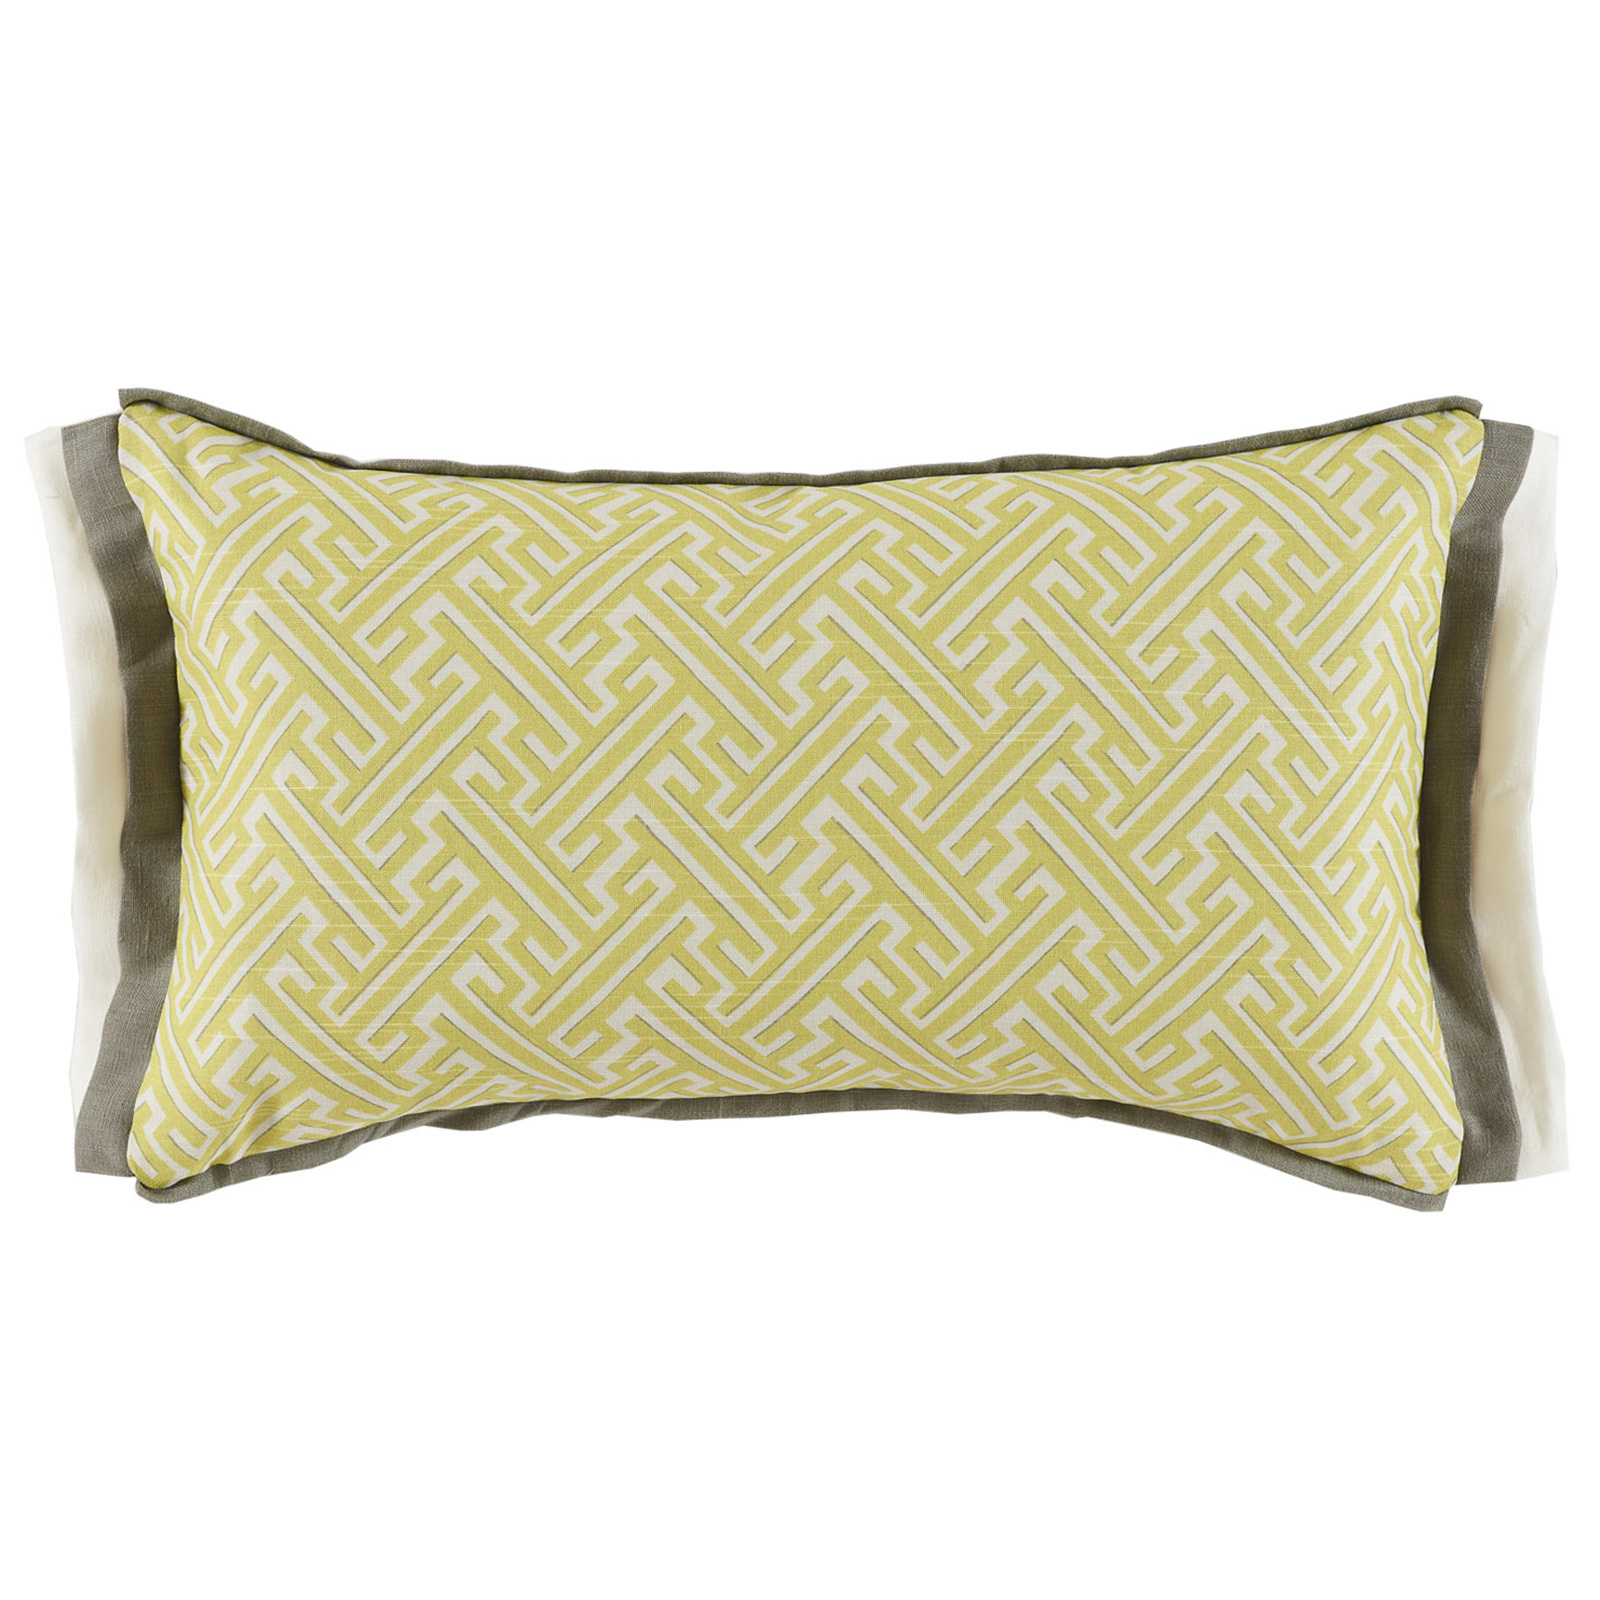 Bluth Modern Classic Graphic Yellow Pattern Pillow - 13x22